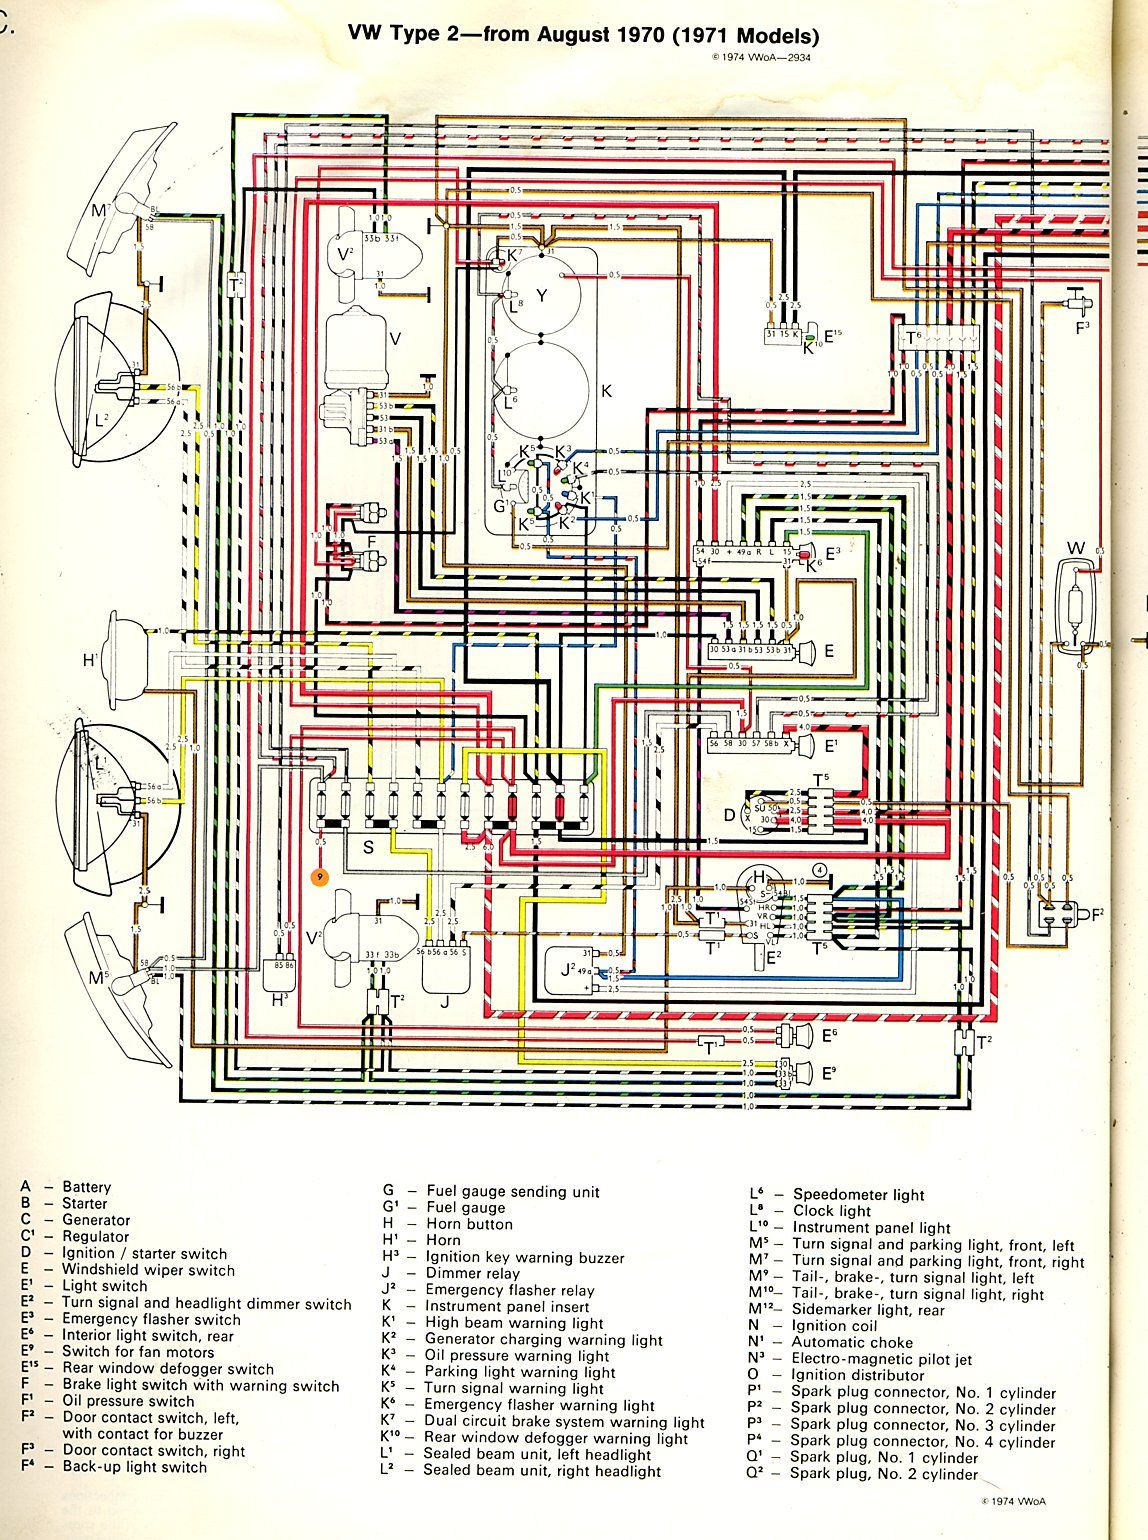 vw 1971 fuse diagram wiring diagram rows 1971 vw camper wiring diagram 1971 vw wiring diagram [ 1148 x 1540 Pixel ]